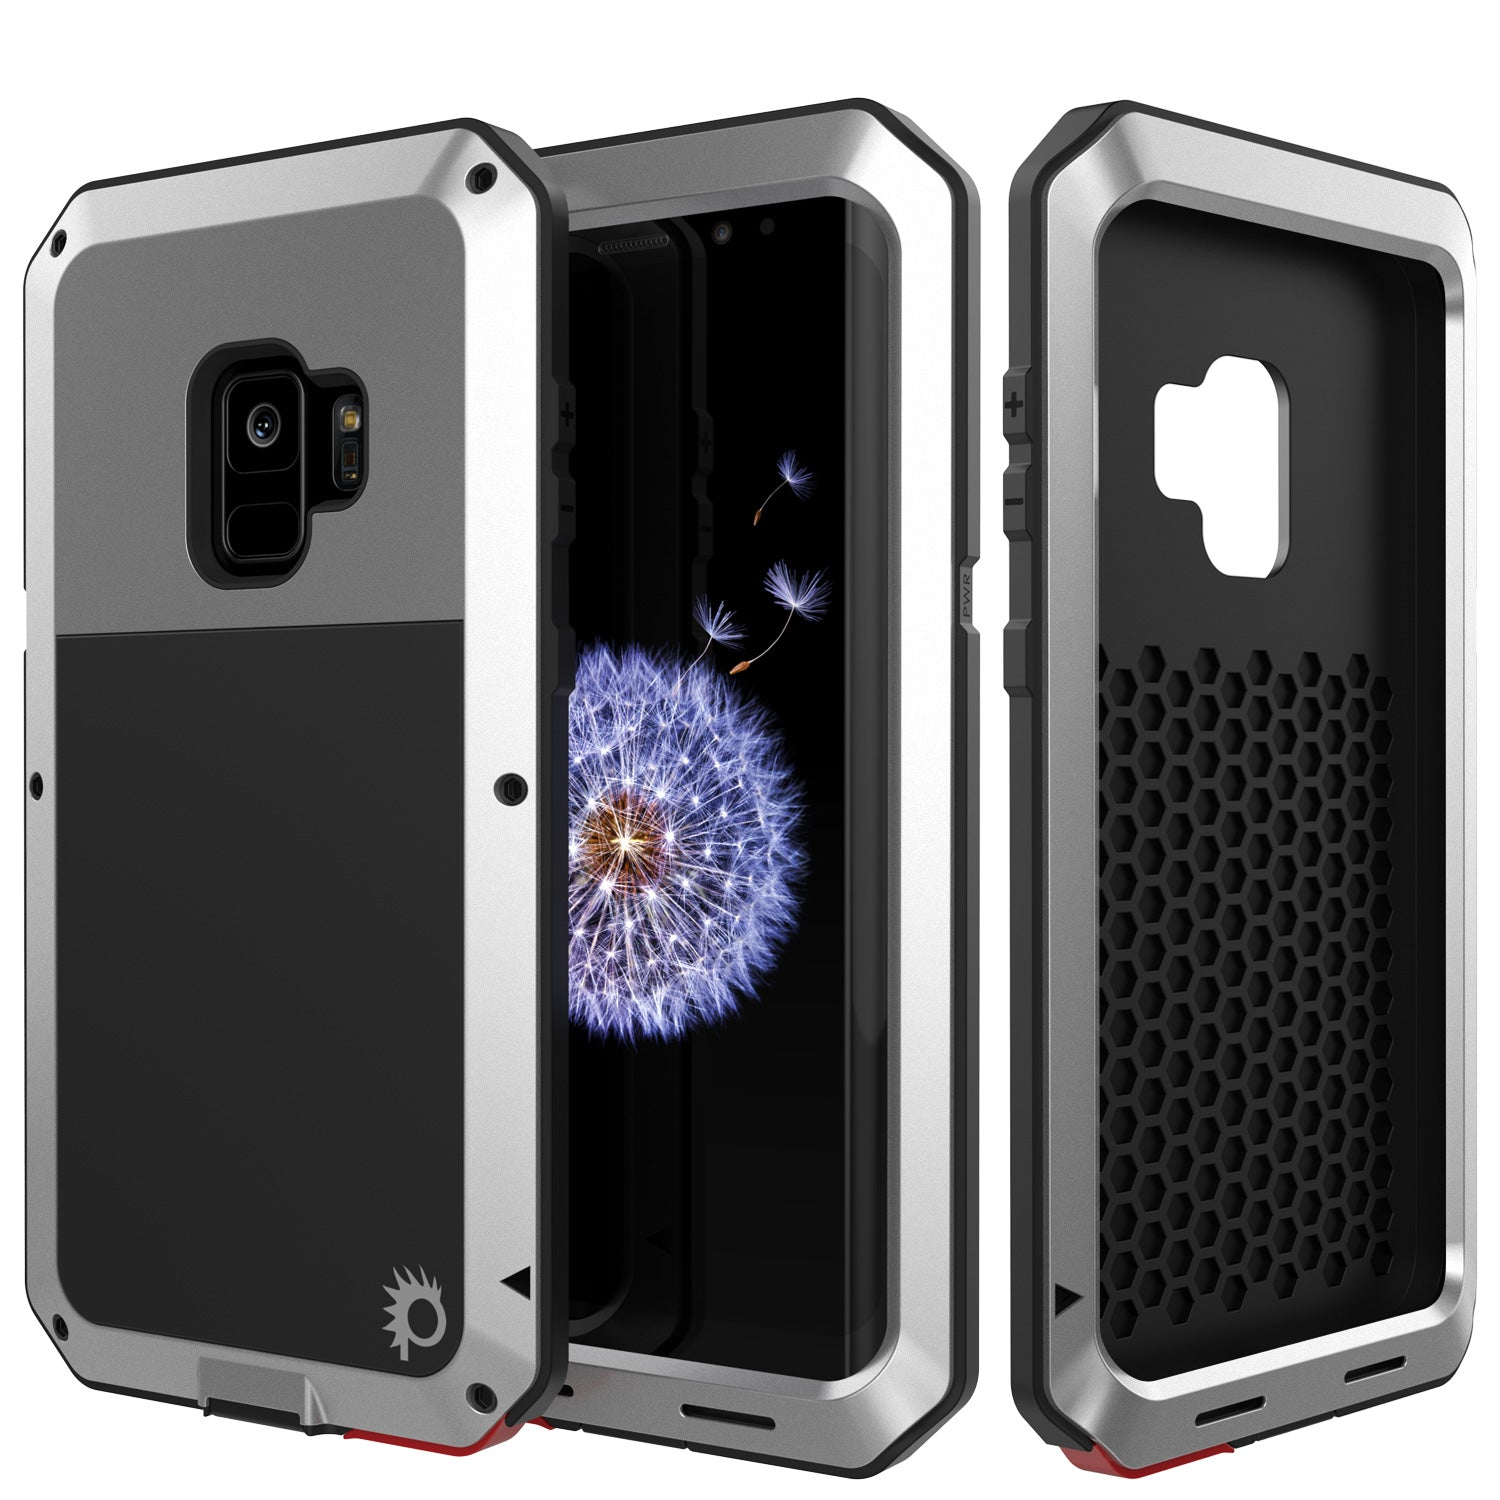 Galaxy S9 Metal Case, Heavy Duty Military Grade Rugged Armor Cover [Silver]